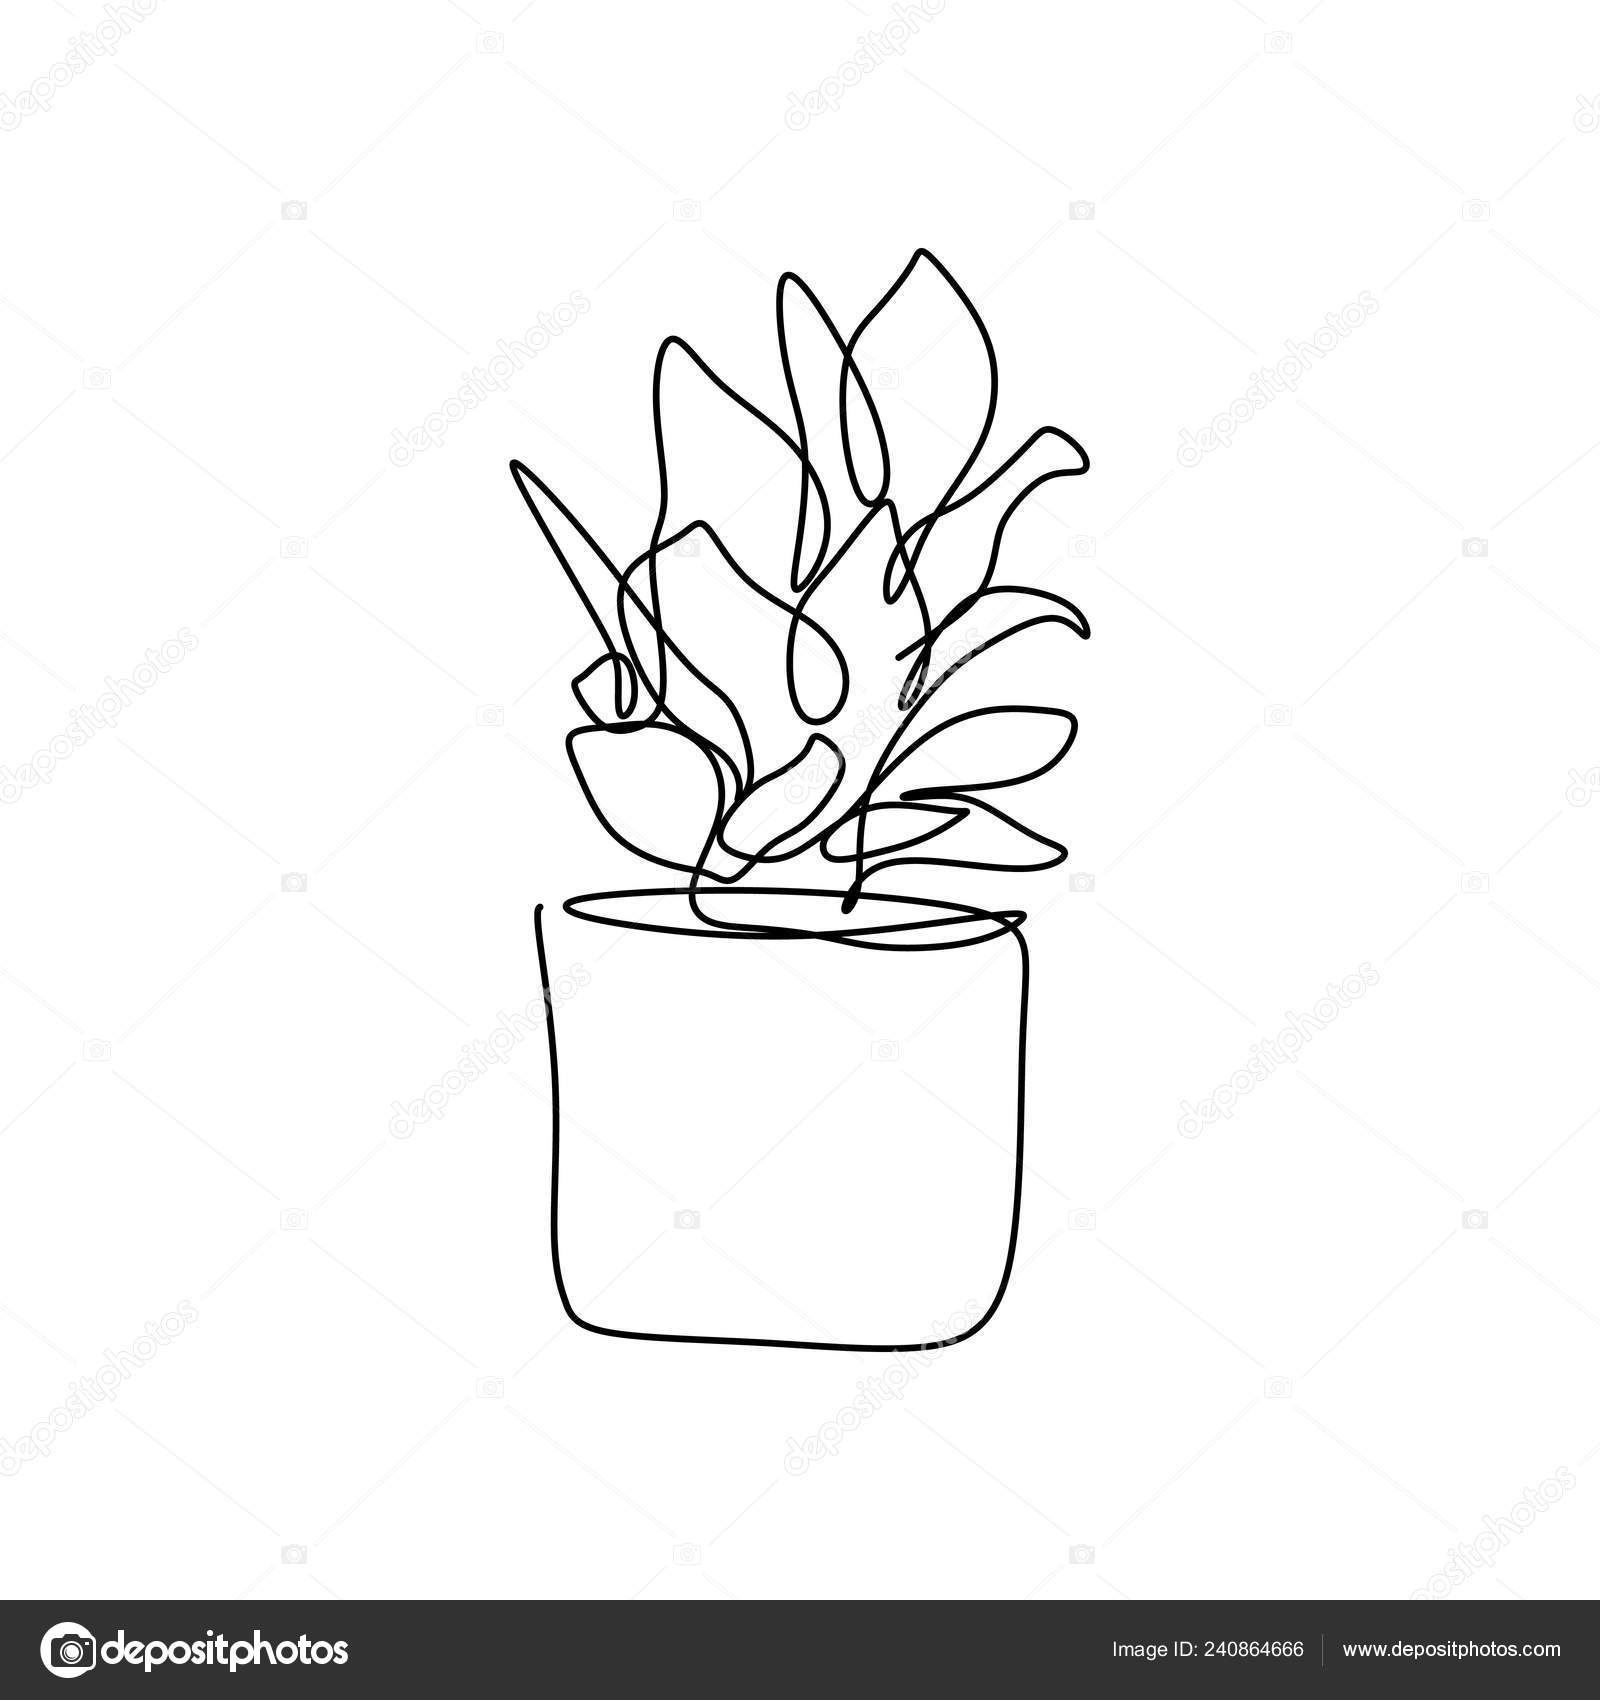 Plant Pot Drawing Plant Pot One Line Drawing Vector Illustration Continuous Stroke Minimalist Stock Vector C Ngupakarti 240864666